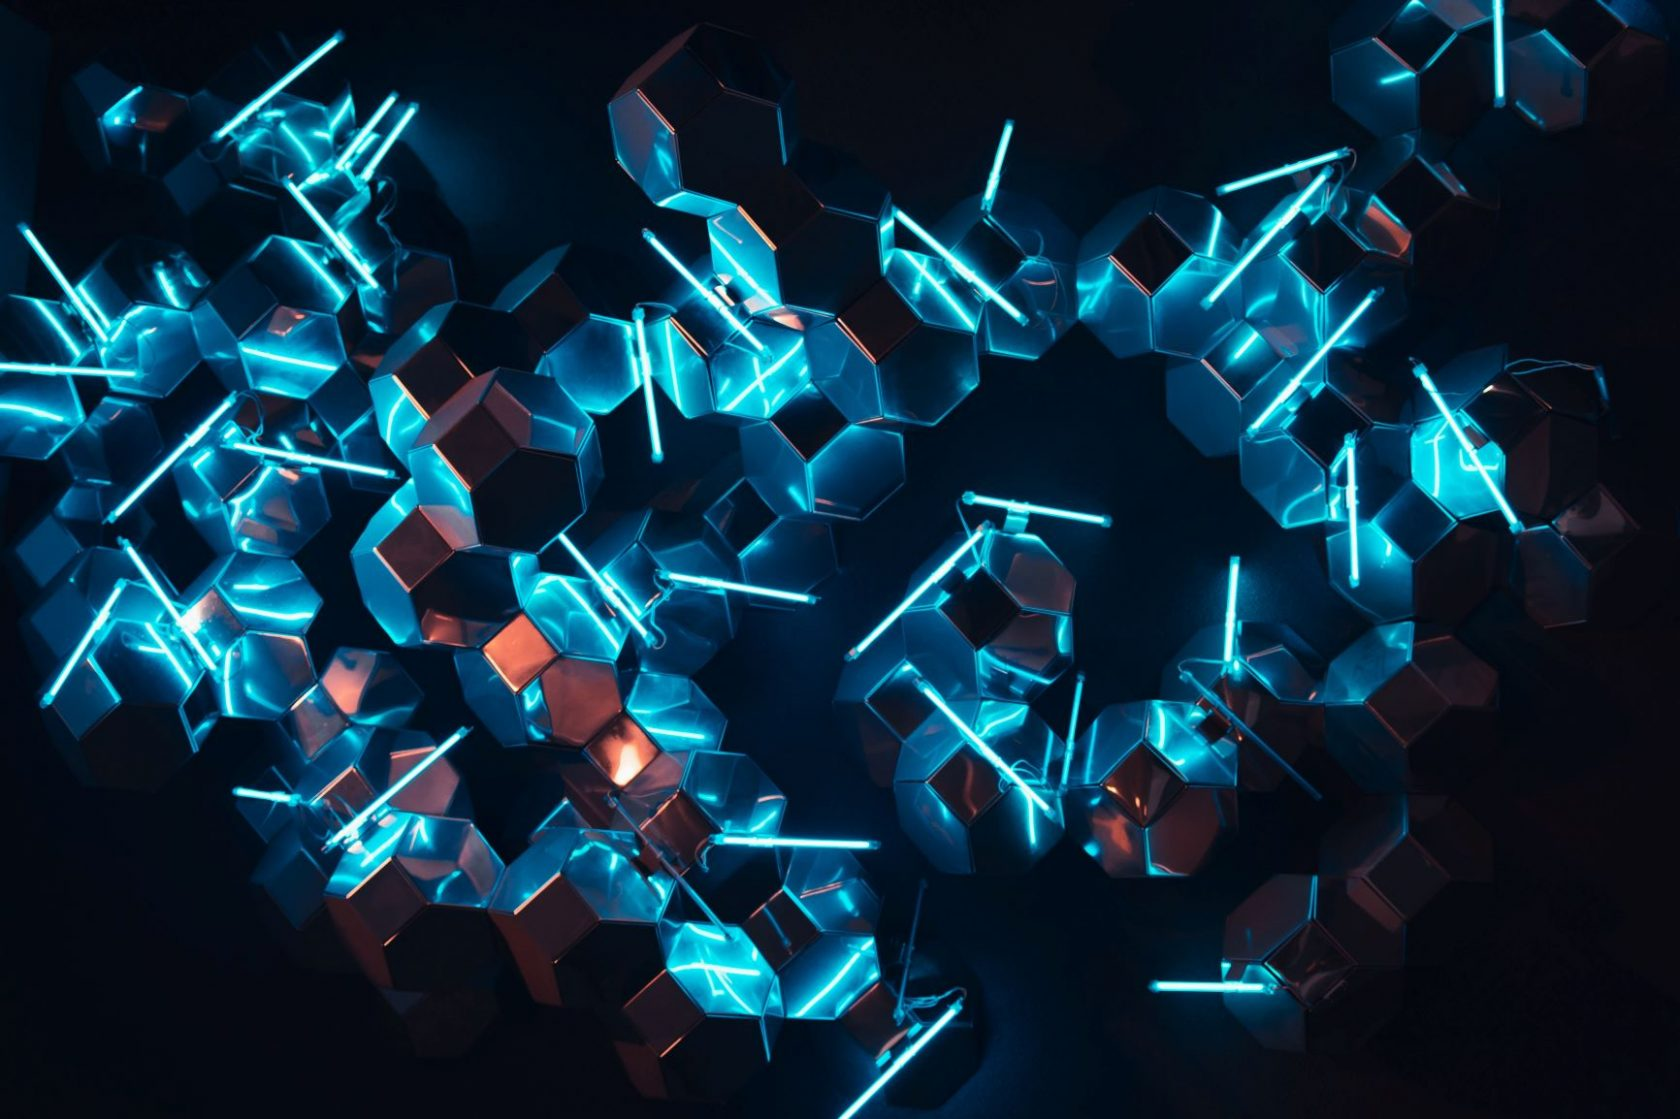 Abstract photograph of hexagonal blocks with neon lights